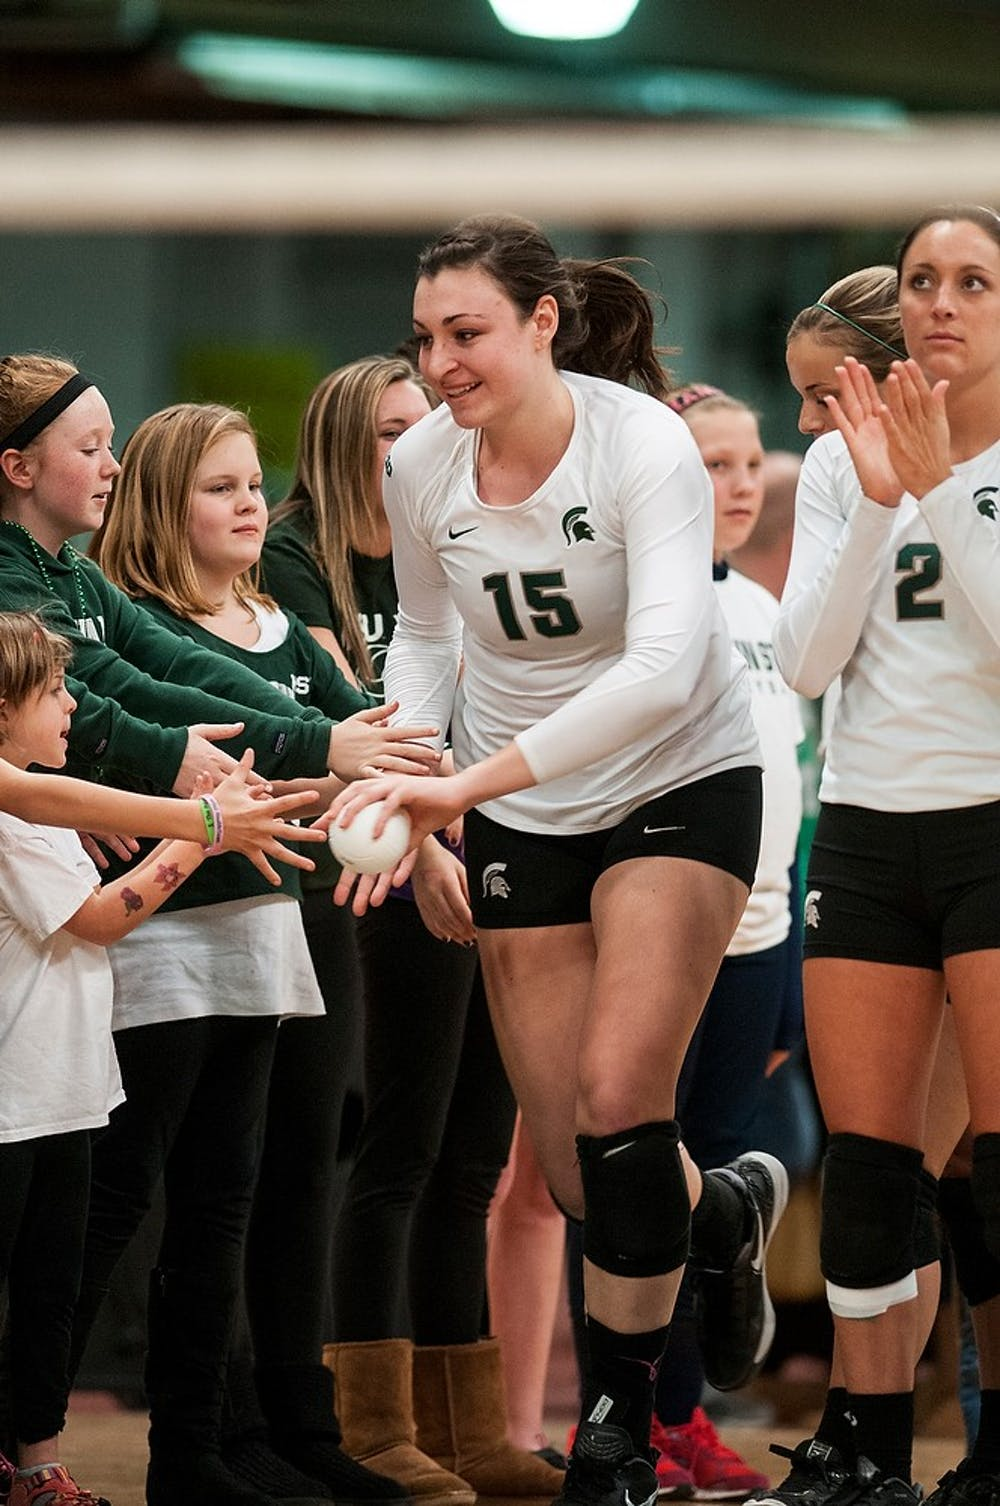 <p>Senior outside hitter Lauren Wicinski high-fives some young fans before the game against Minnesota on Nov. 23, 2013, at Jenison Field House. The Spartans lost to the Golden Gophers, 3-1. Khoa Nguyen/The State News </p>